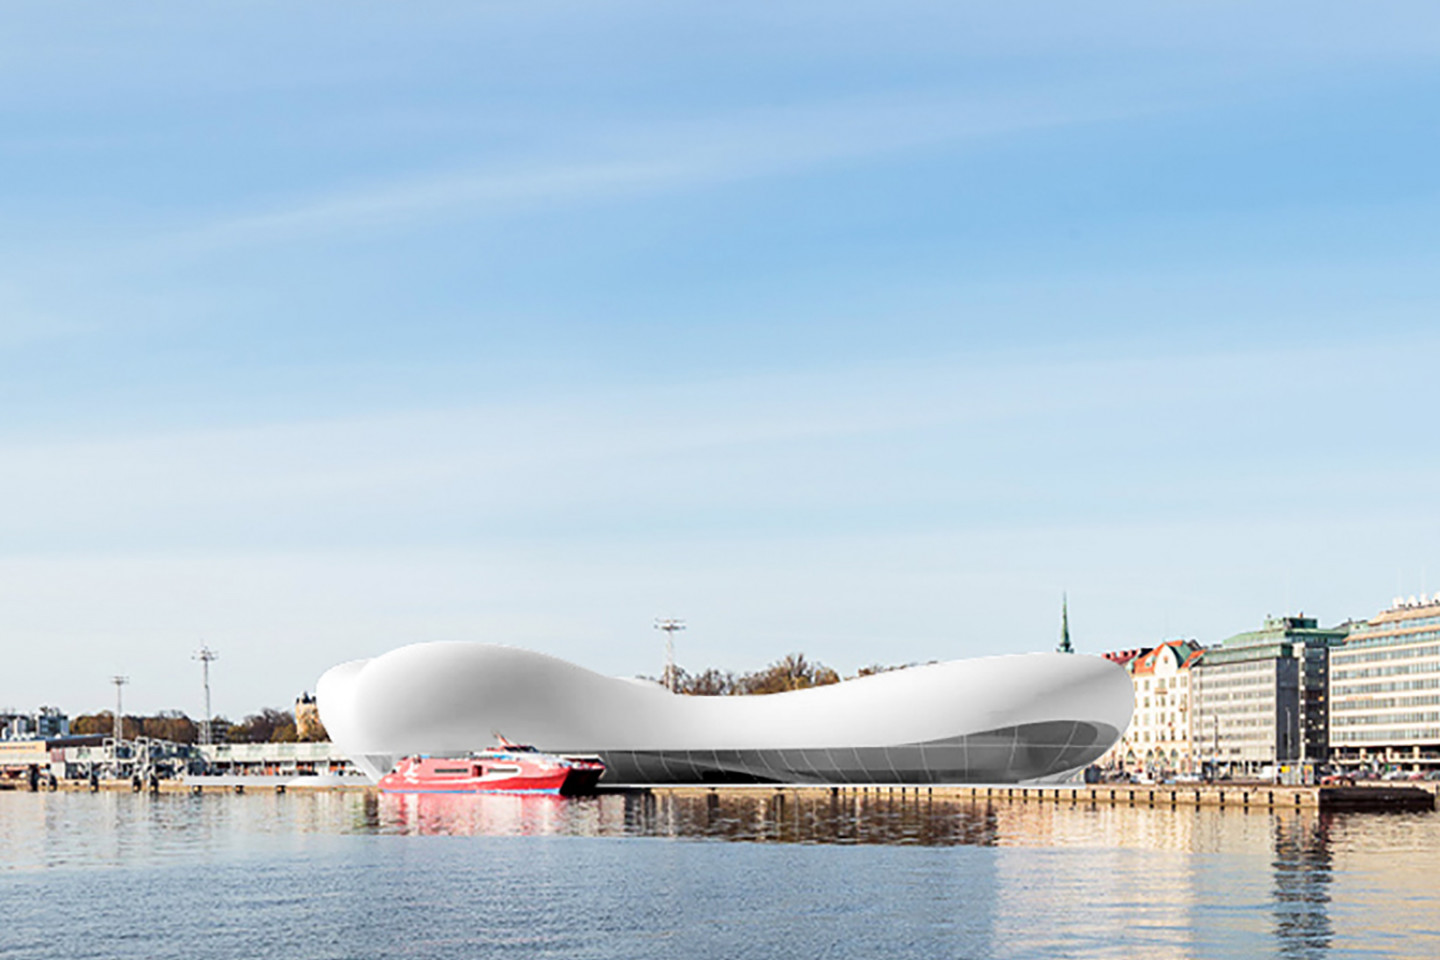 Guggenheim museum Helsinki • view of the old part of town